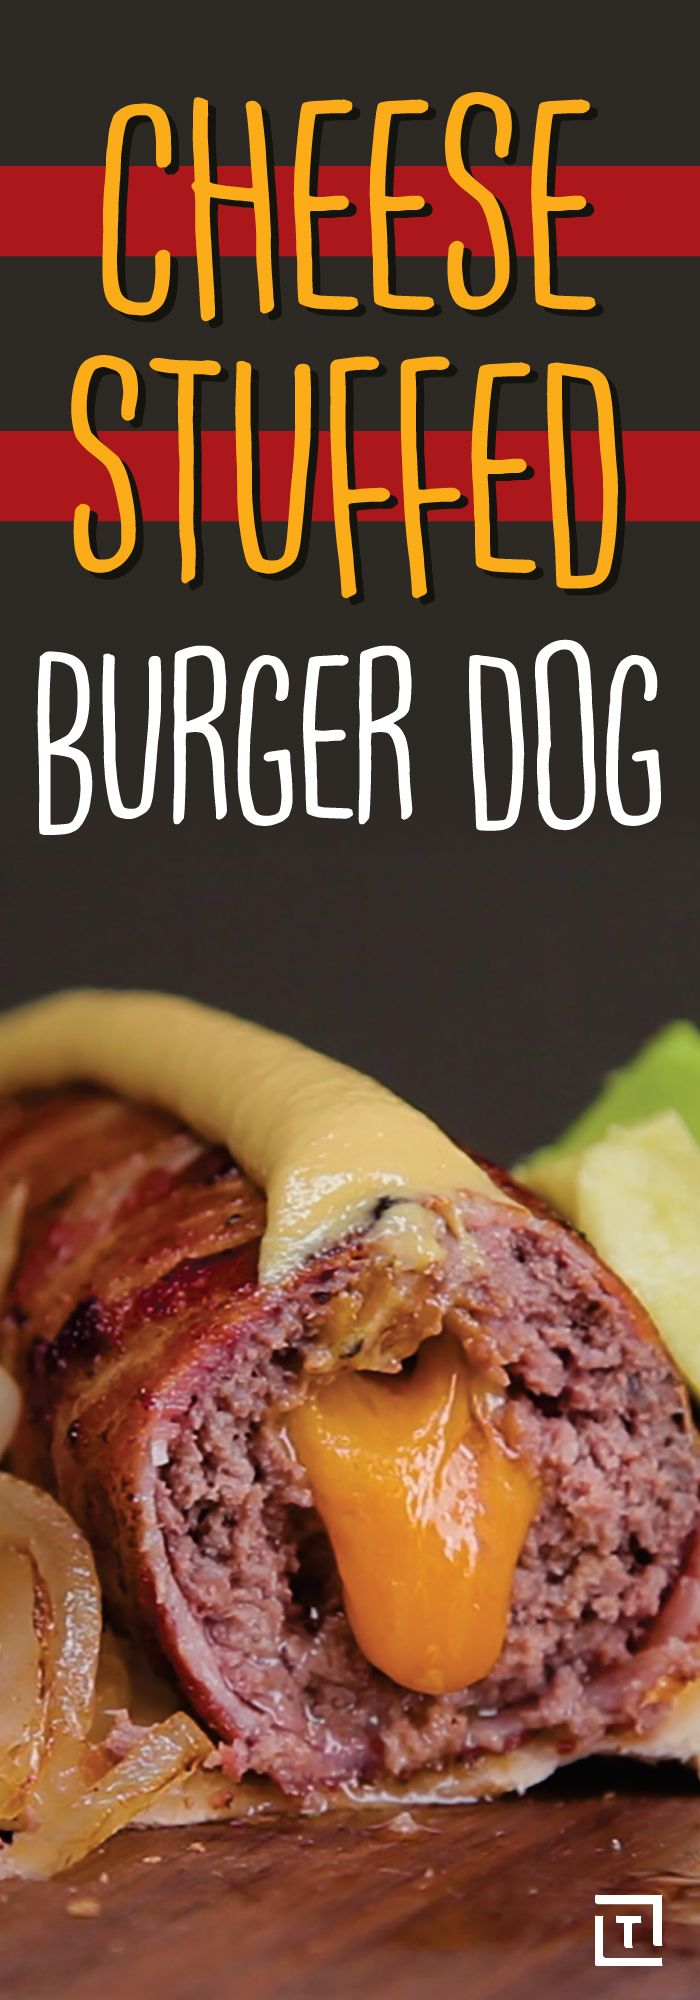 Is it a cheeseburger? Is it a hot dog? Is the fact that we're asking these questions to begin with enough to pique your curiosity (and appetite)? Enter Food Steez's cheese-stuffed burger dogs: the ultimate combination of two American classics in one convenient delivery mechanism.